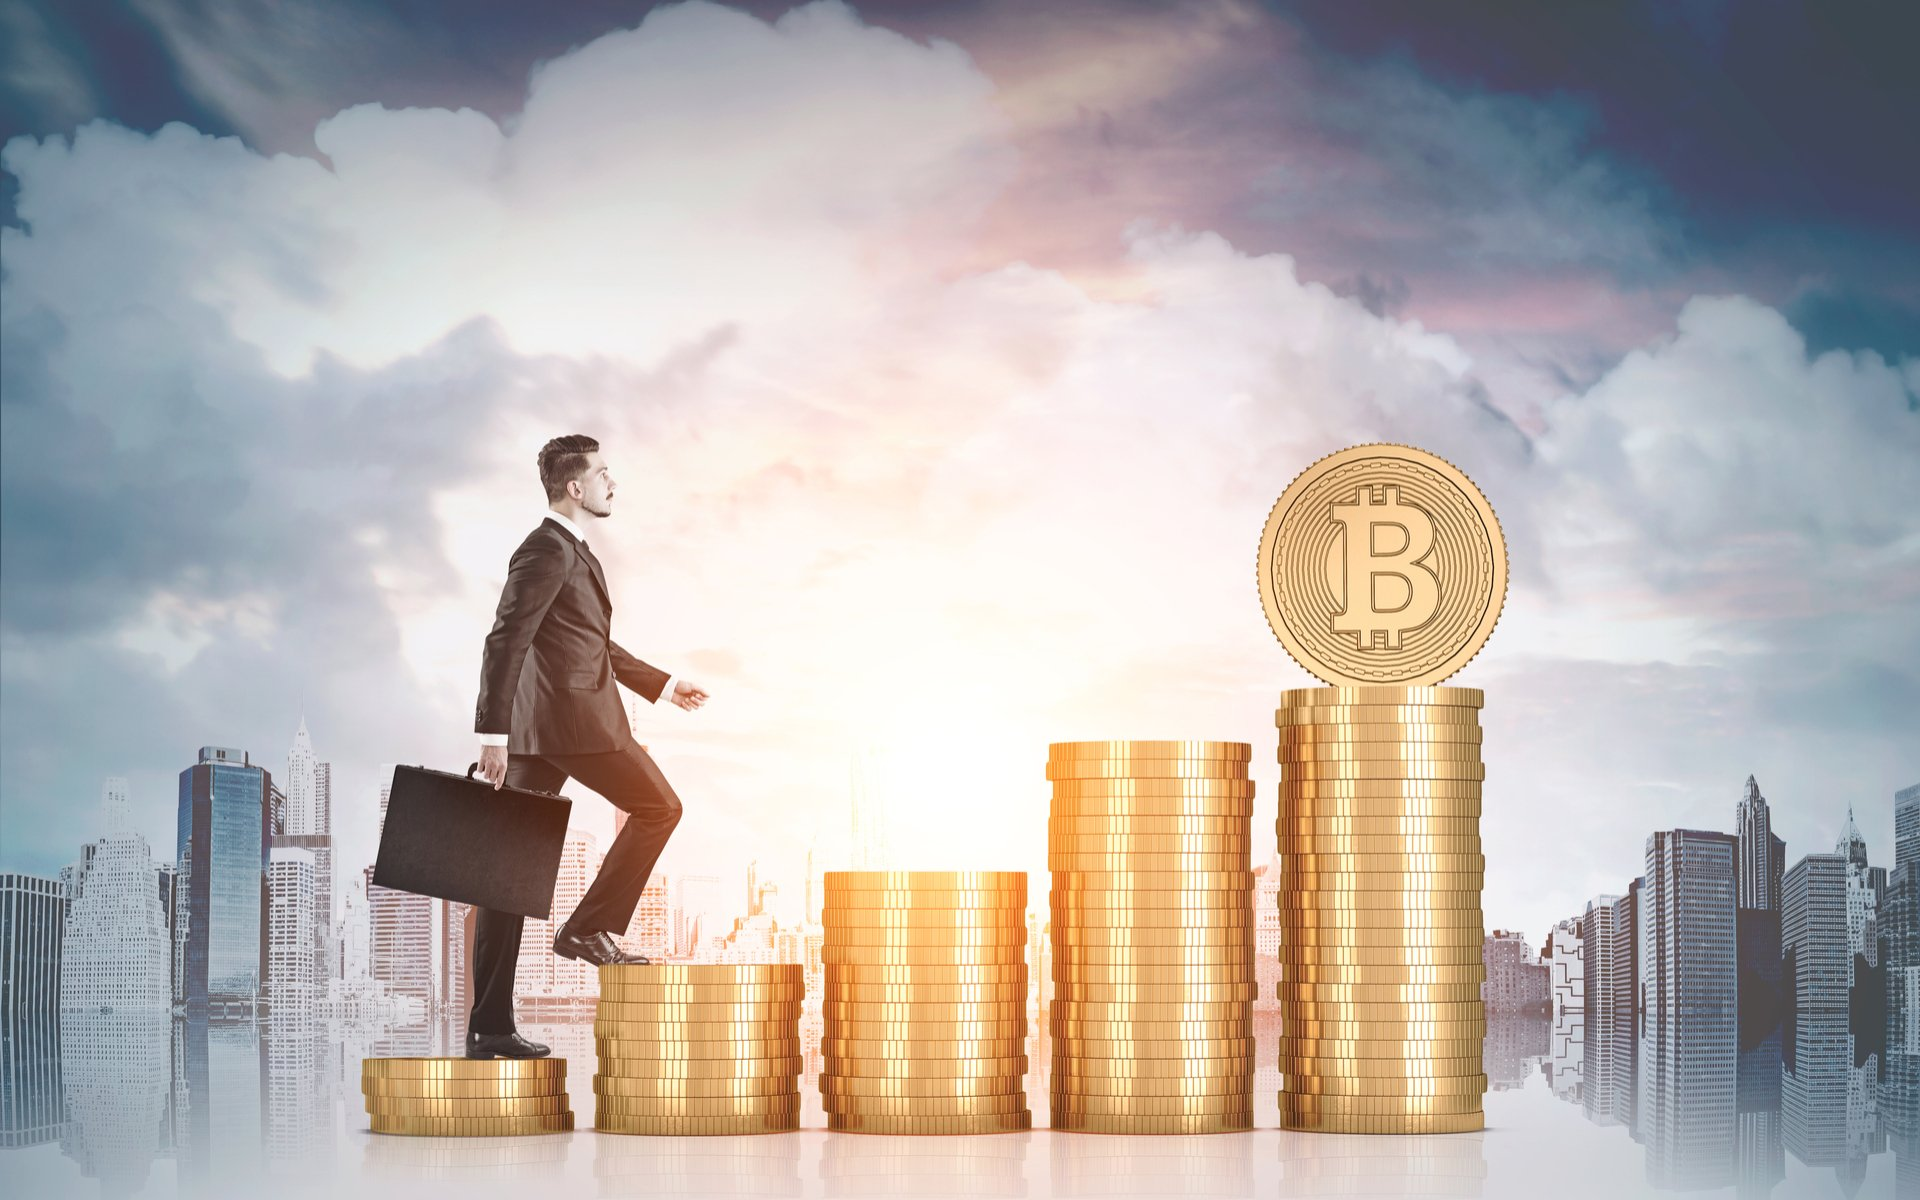 Number of financial planners investing in crypto increases by 50%